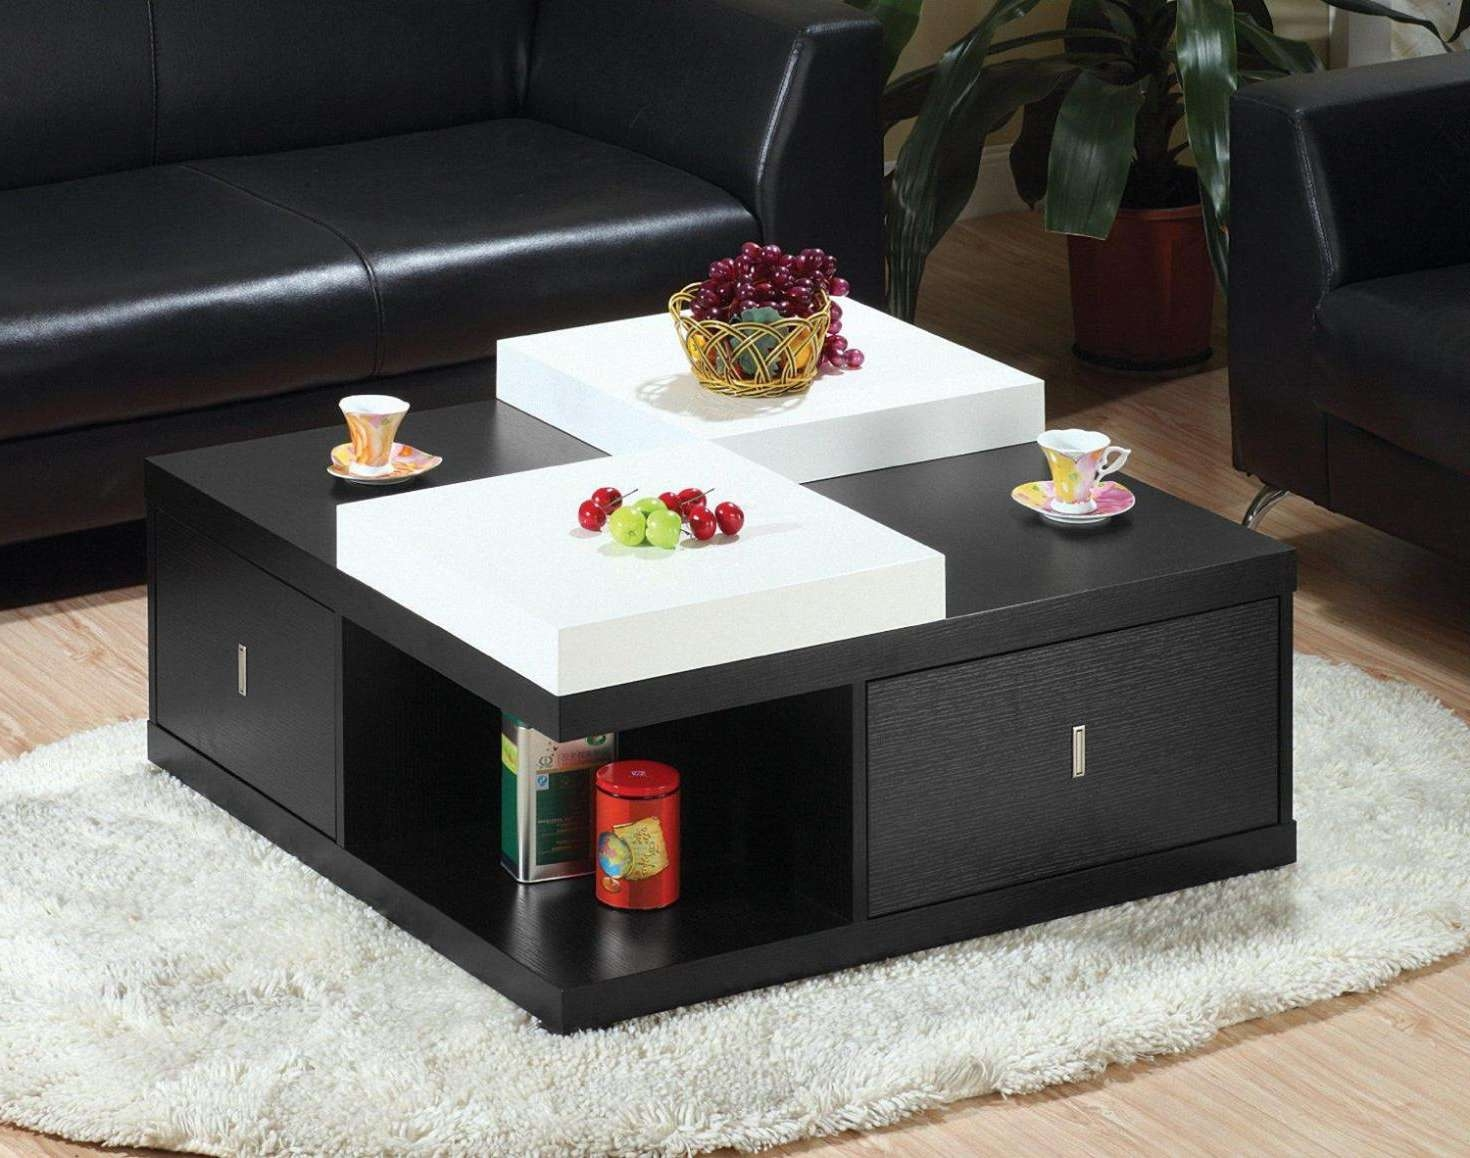 Trendy Square Coffee Tables With Storage Cubes In Square Coffee Table With Storage Cubes : Bed And Shower – Best (View 15 of 20)